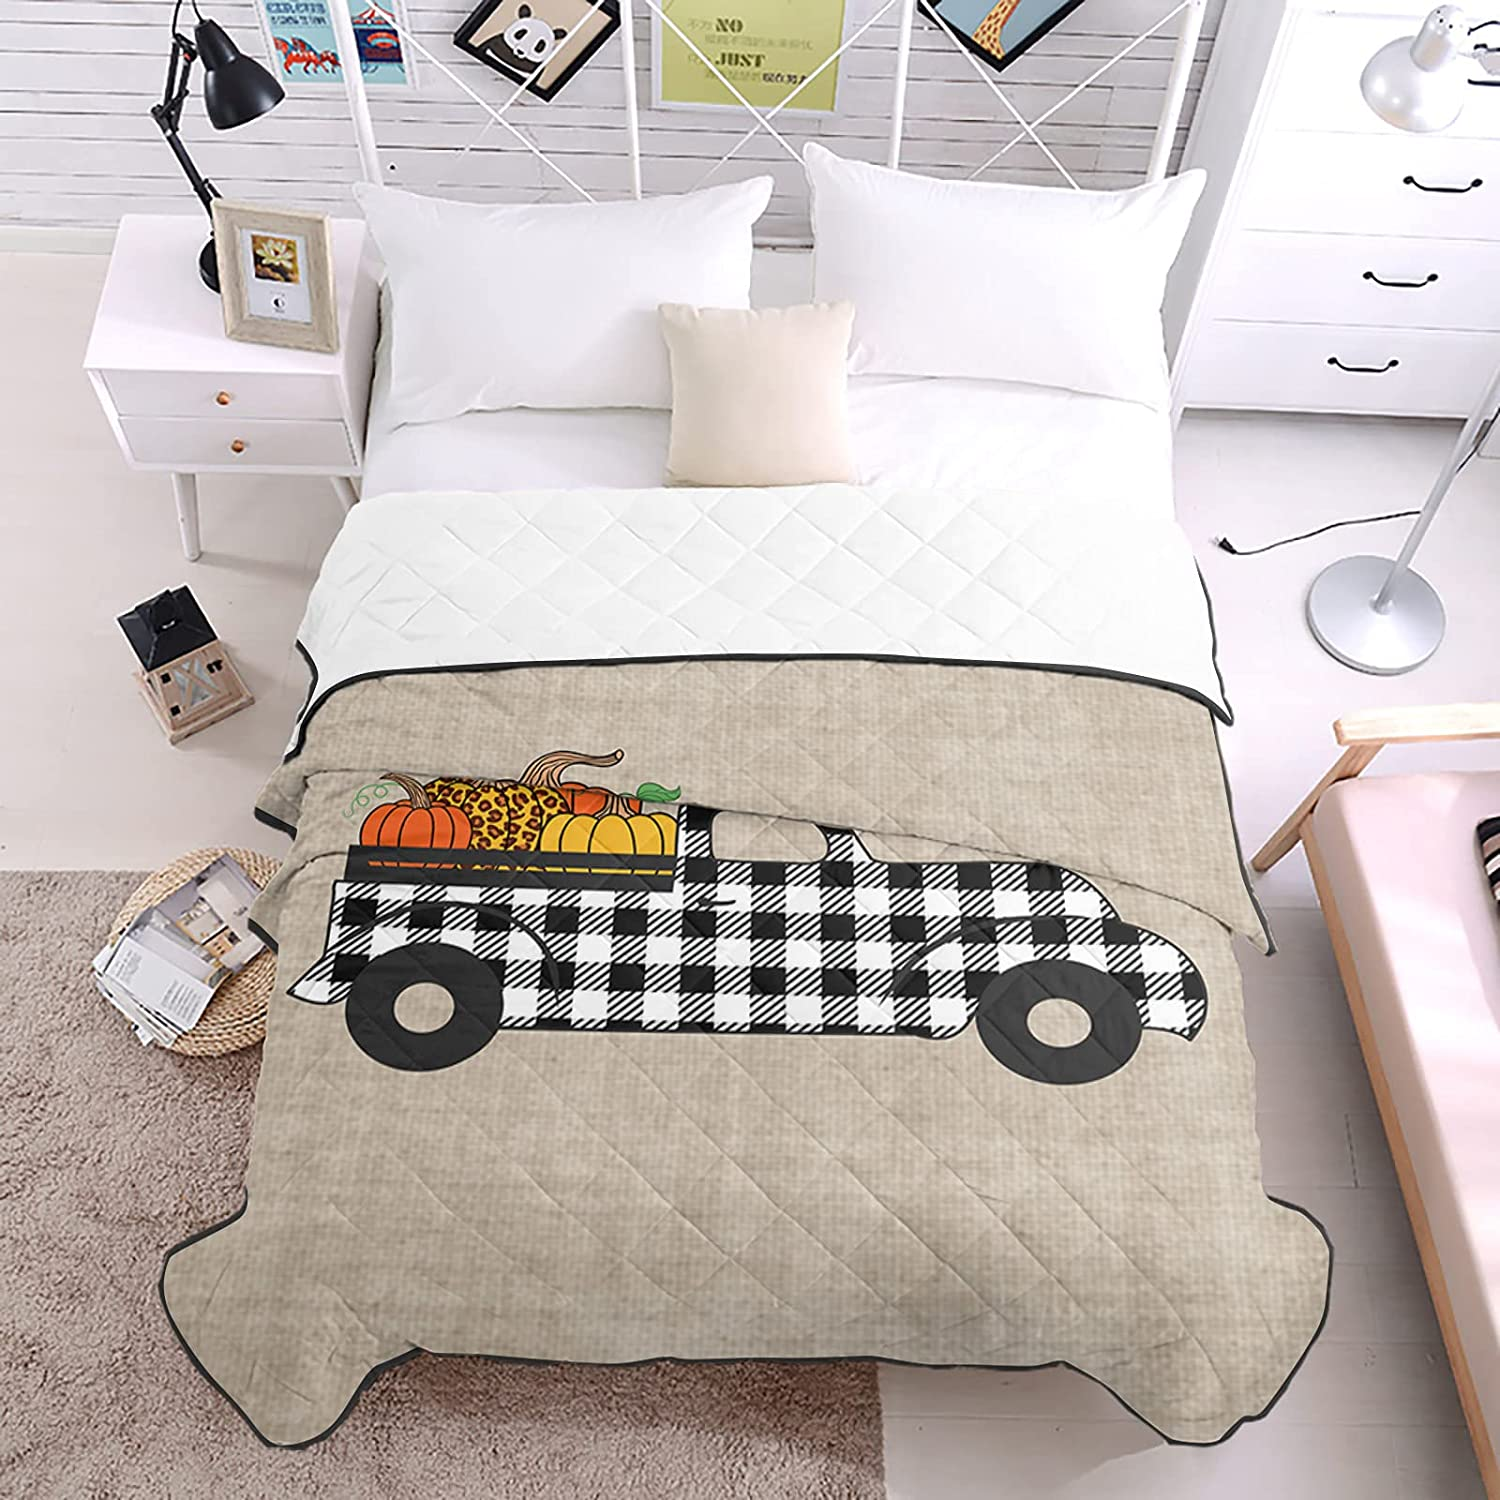 DecorLovee Bedding Duvets It's Fall Y'all All Season Comfo Clearance SALE! Limited time! Max 56% OFF Down